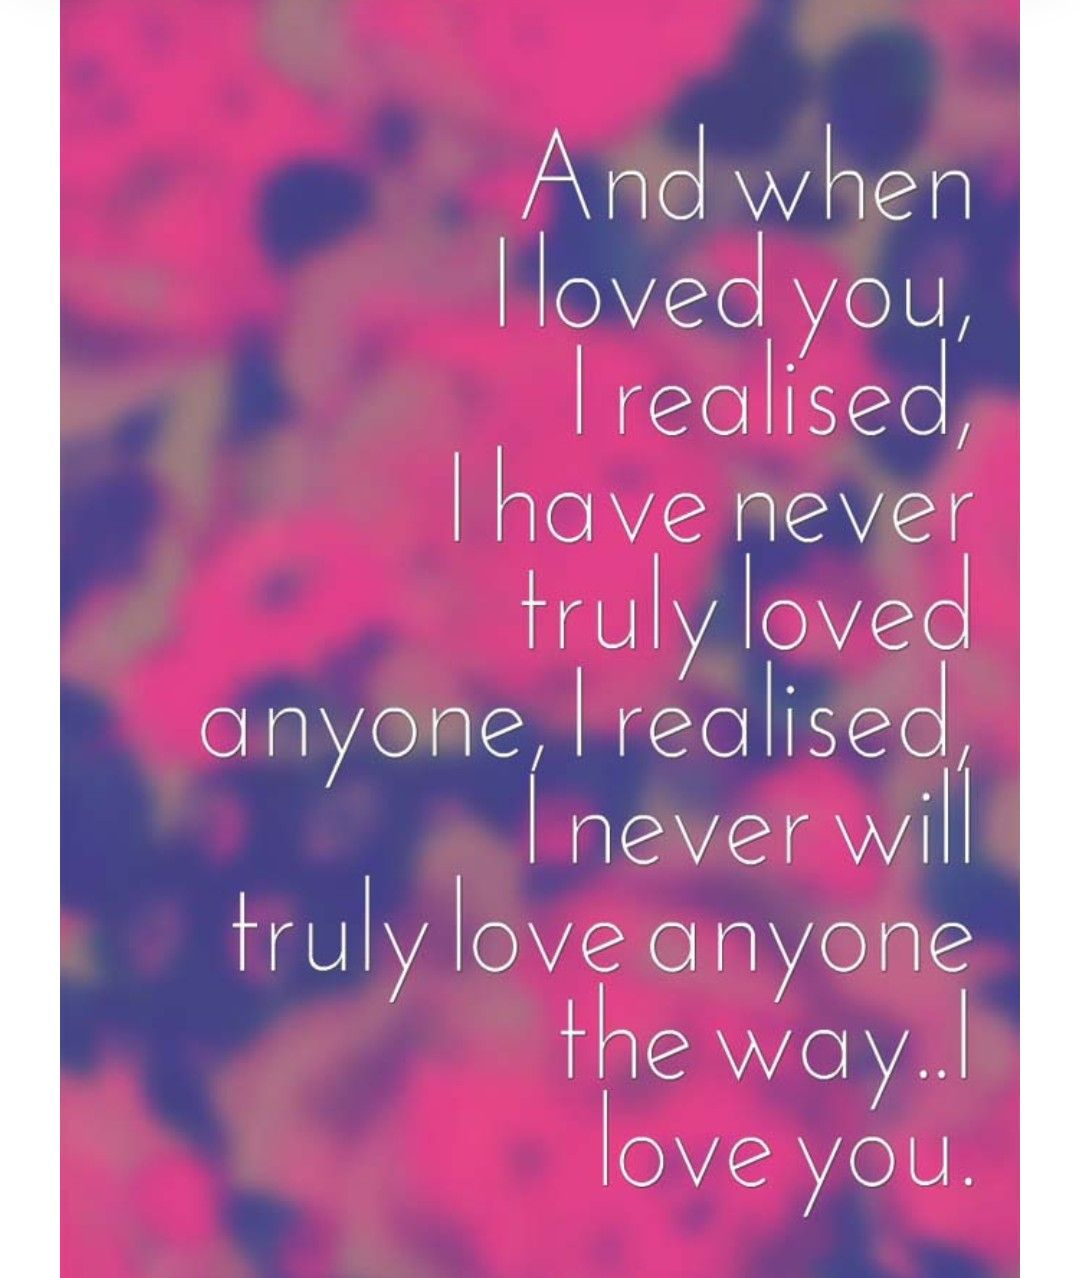 Famous love quotes image by brooke grant on my heart